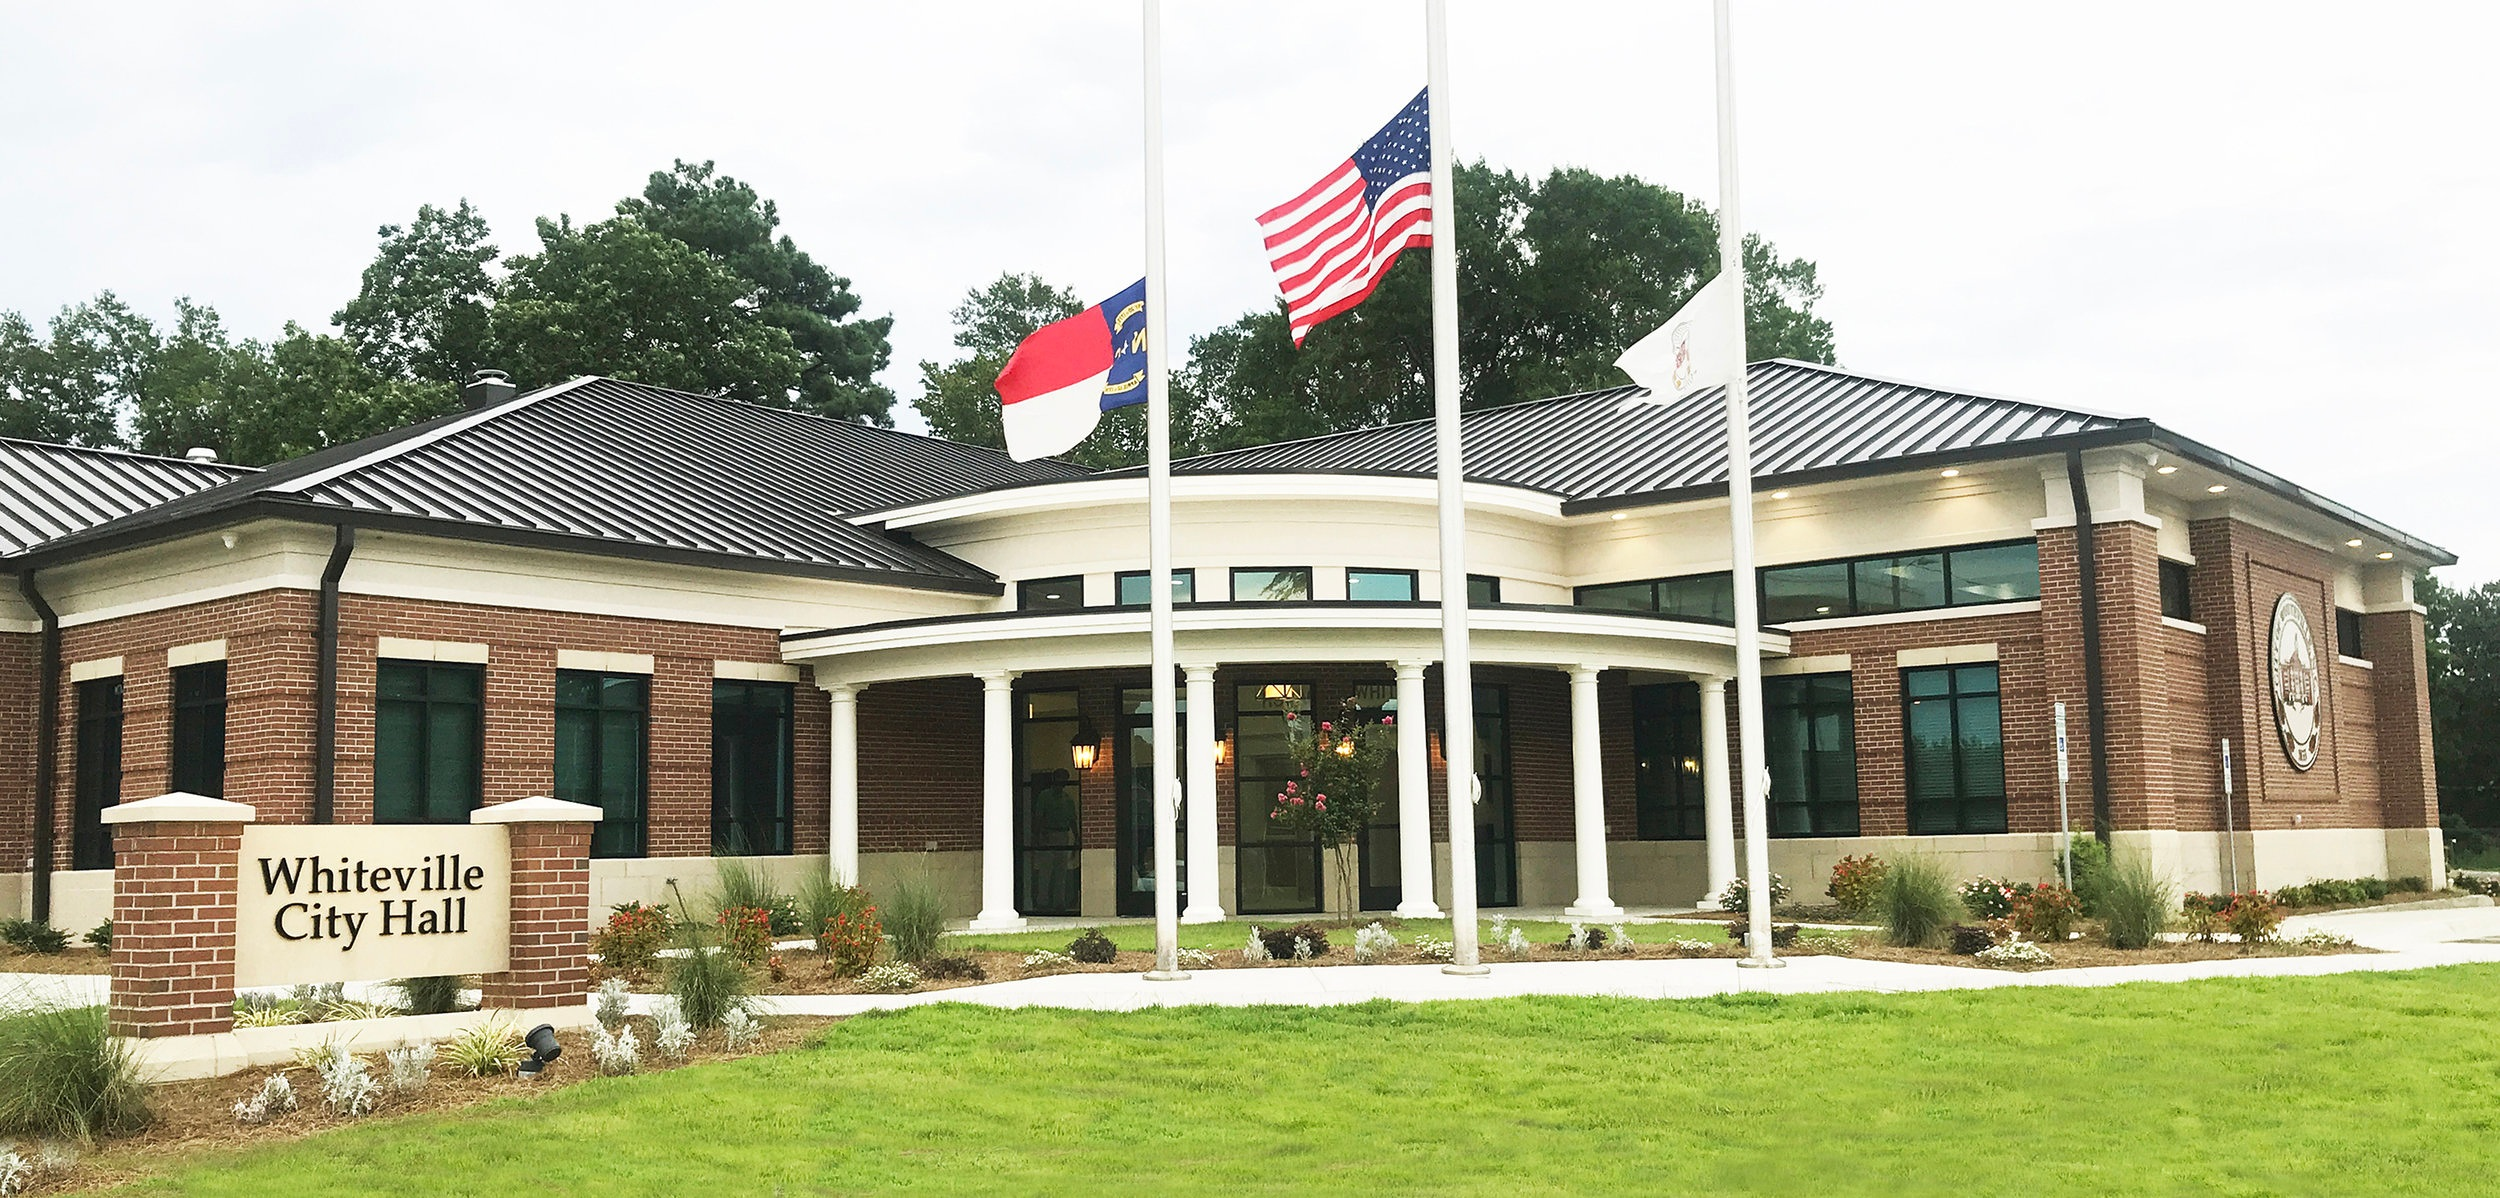 The new City Hall opened to the public on Monday, July 22, at 317 Madison Street.